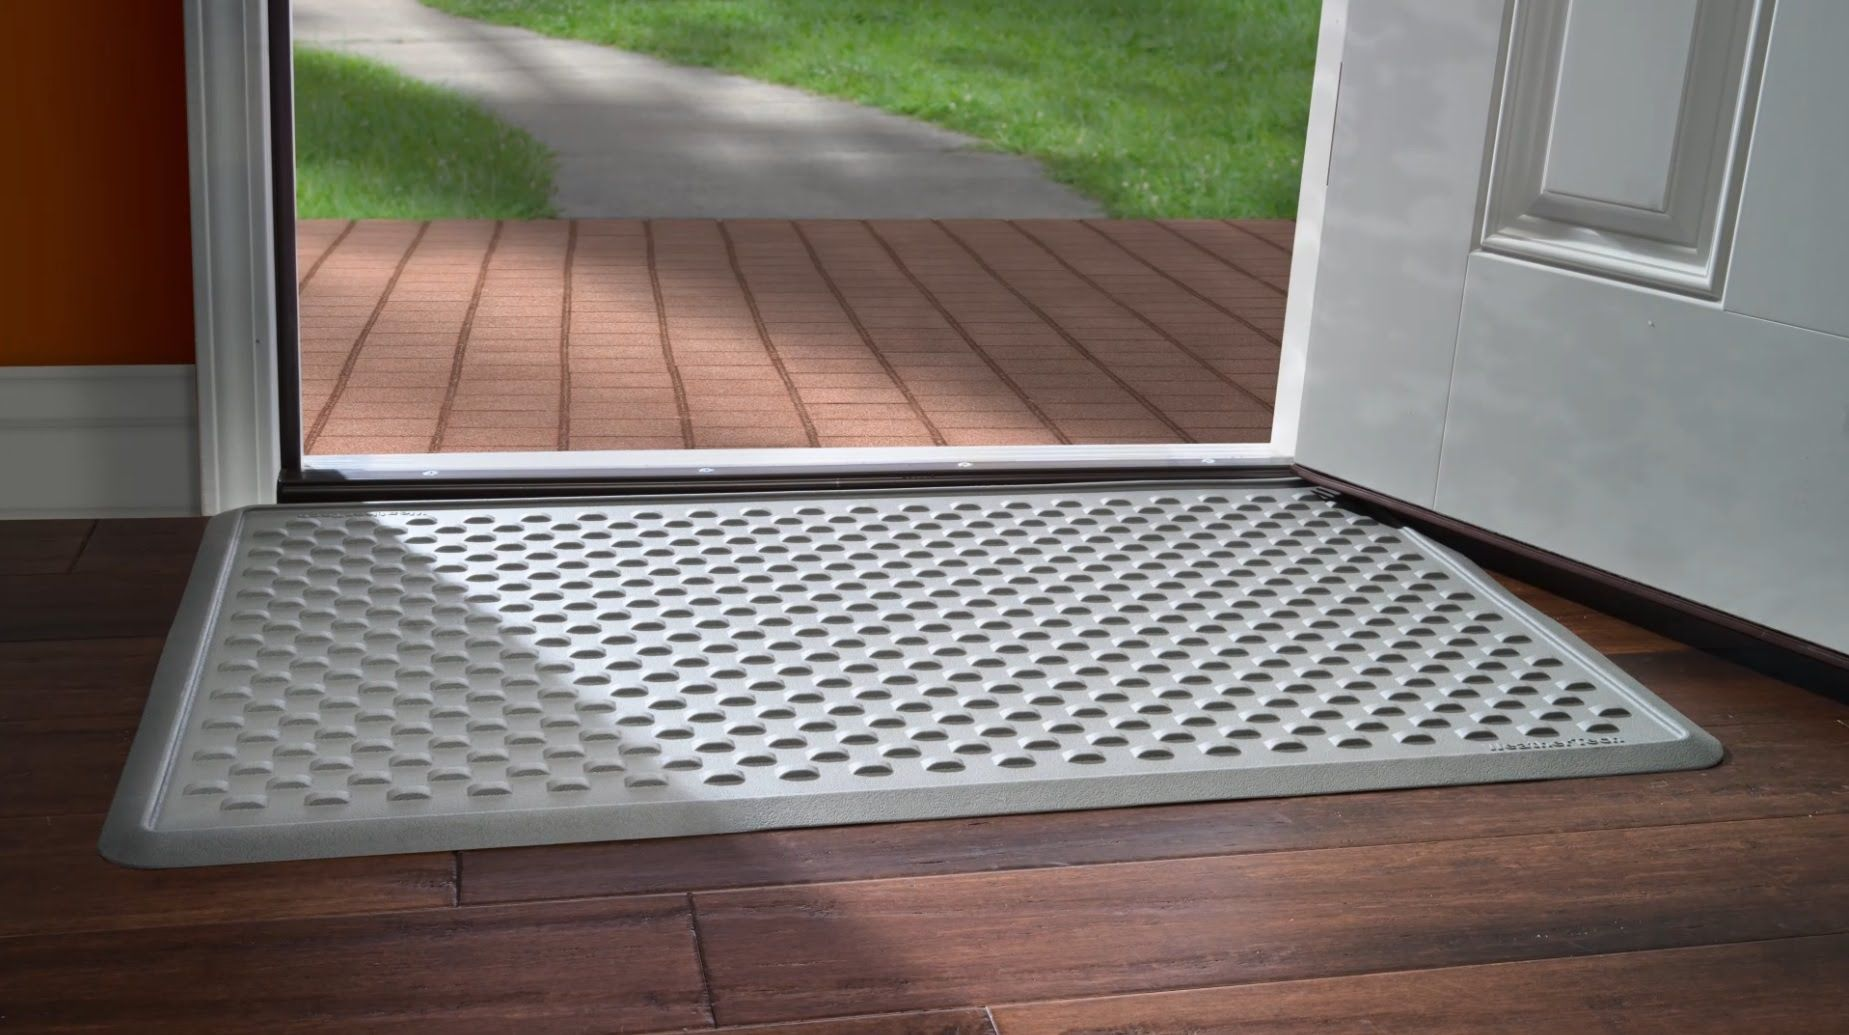 WeatherTech® now makes doormats to protect your home. Both